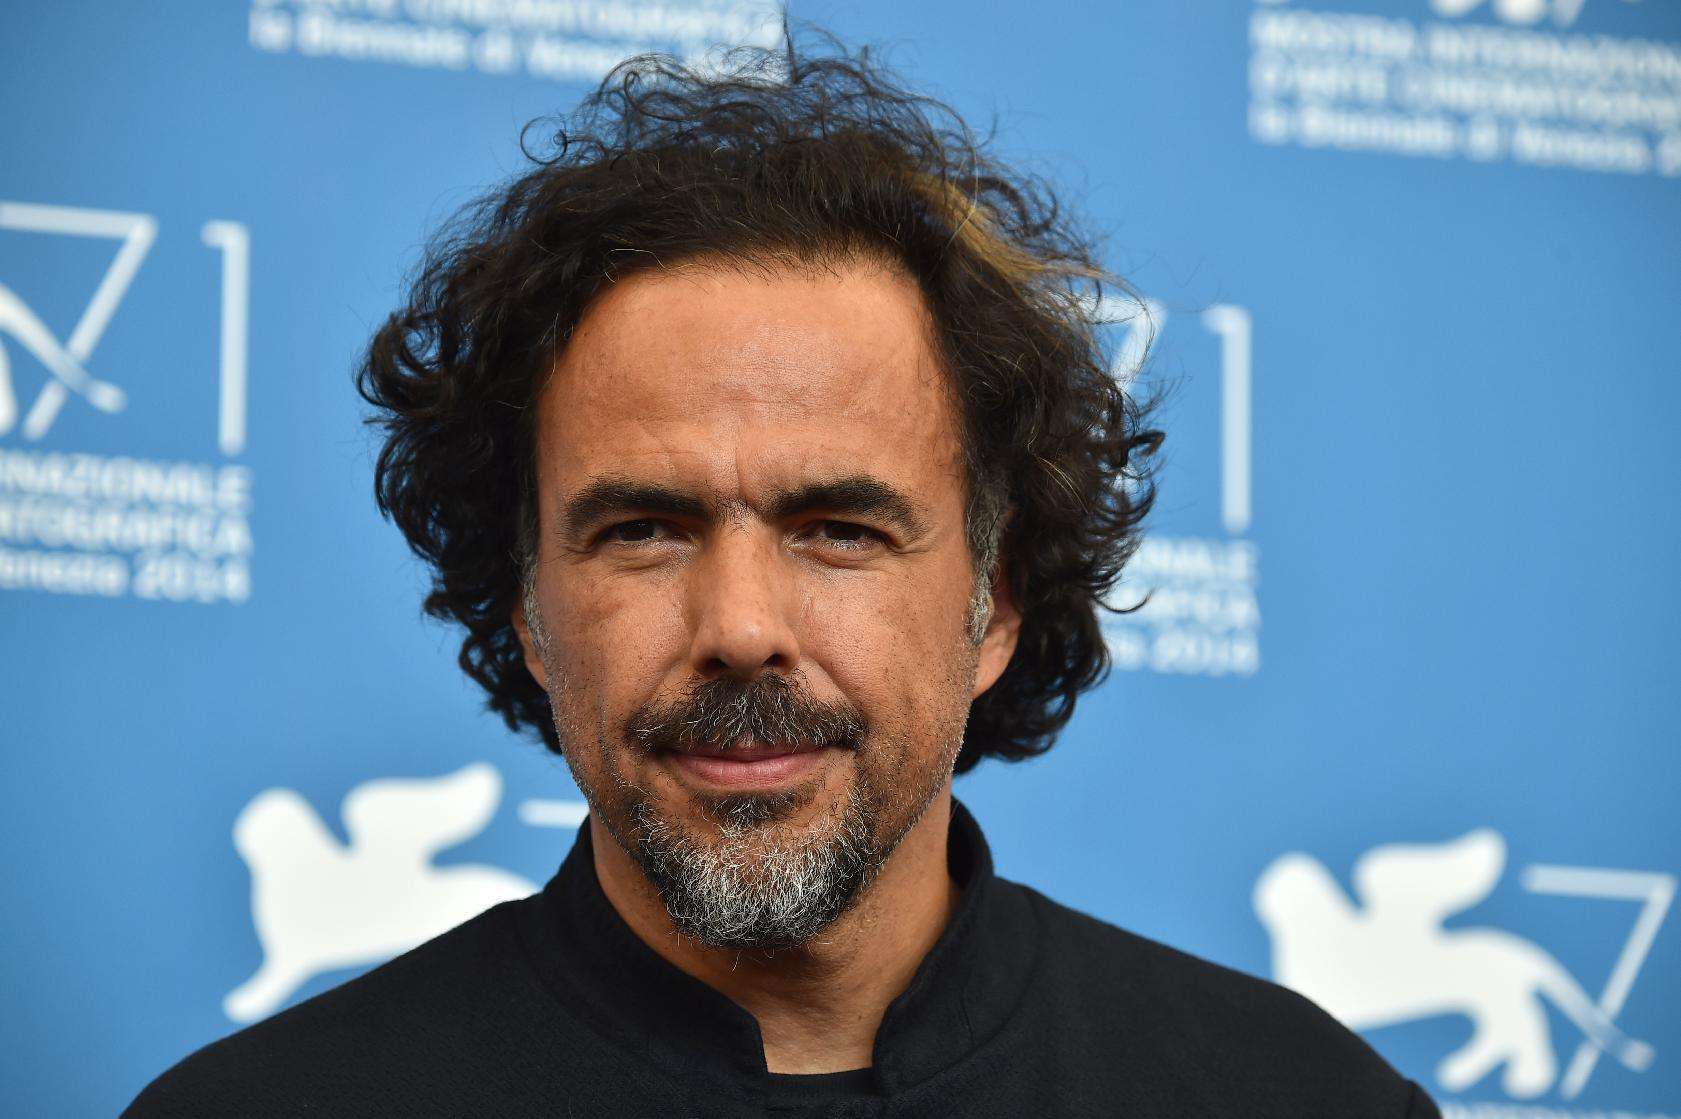 Inarritu scoops top DGA prize for 'The Revenant'